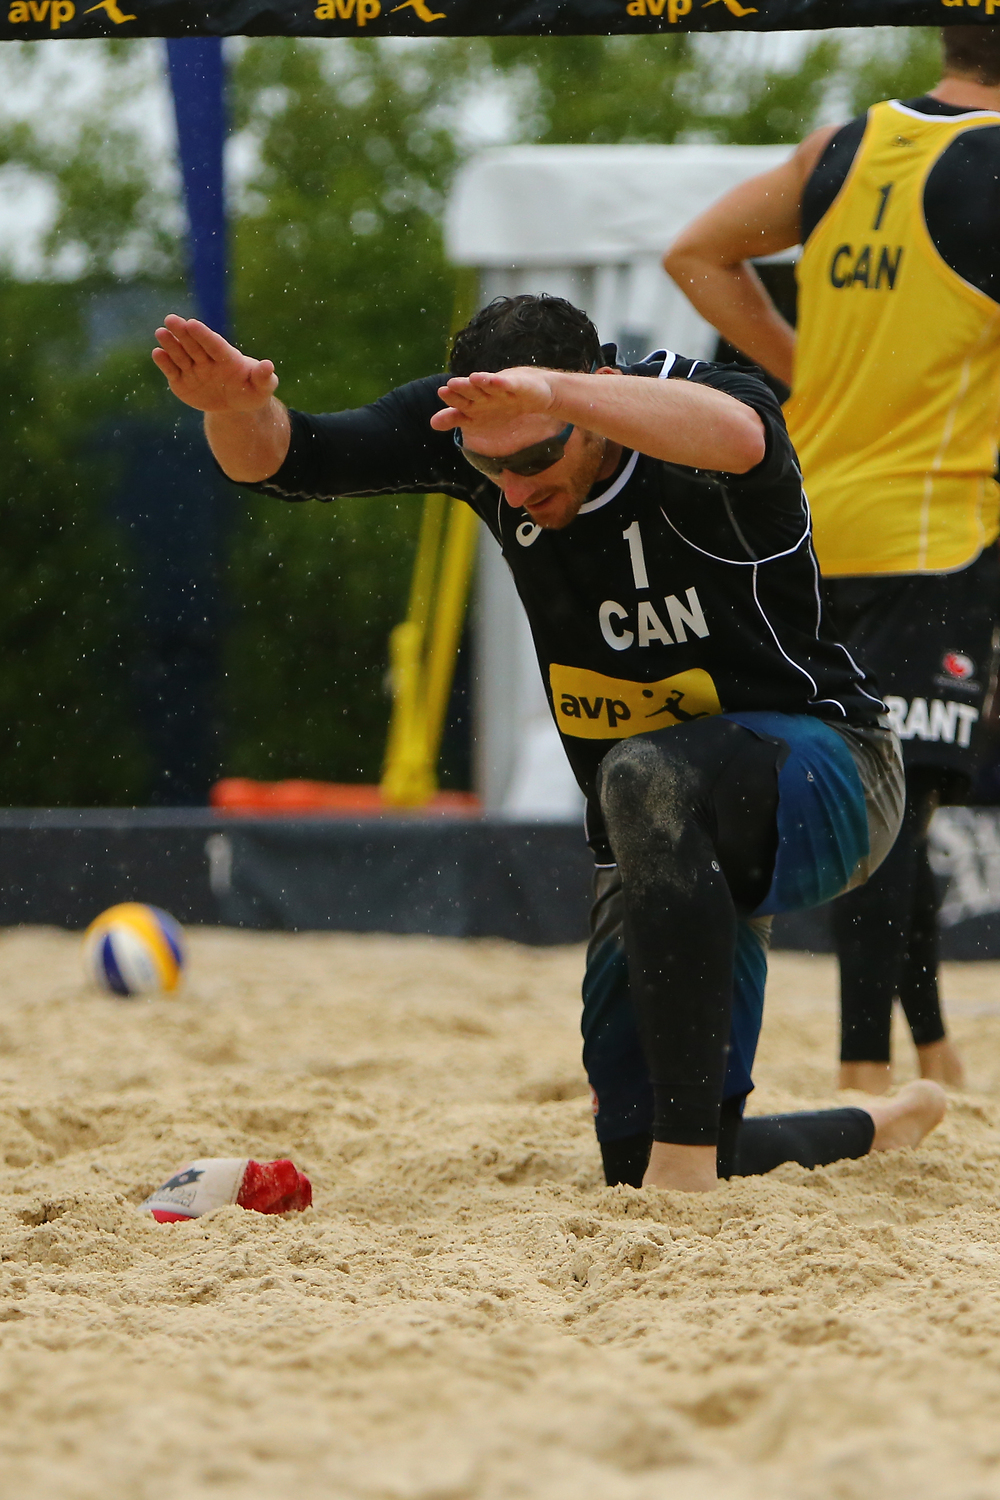 Josh Binstock bows to his partner Sam Schachter during their match against Grant O'Gorman (background) and Sam Pedlow.  Photo: FIVB